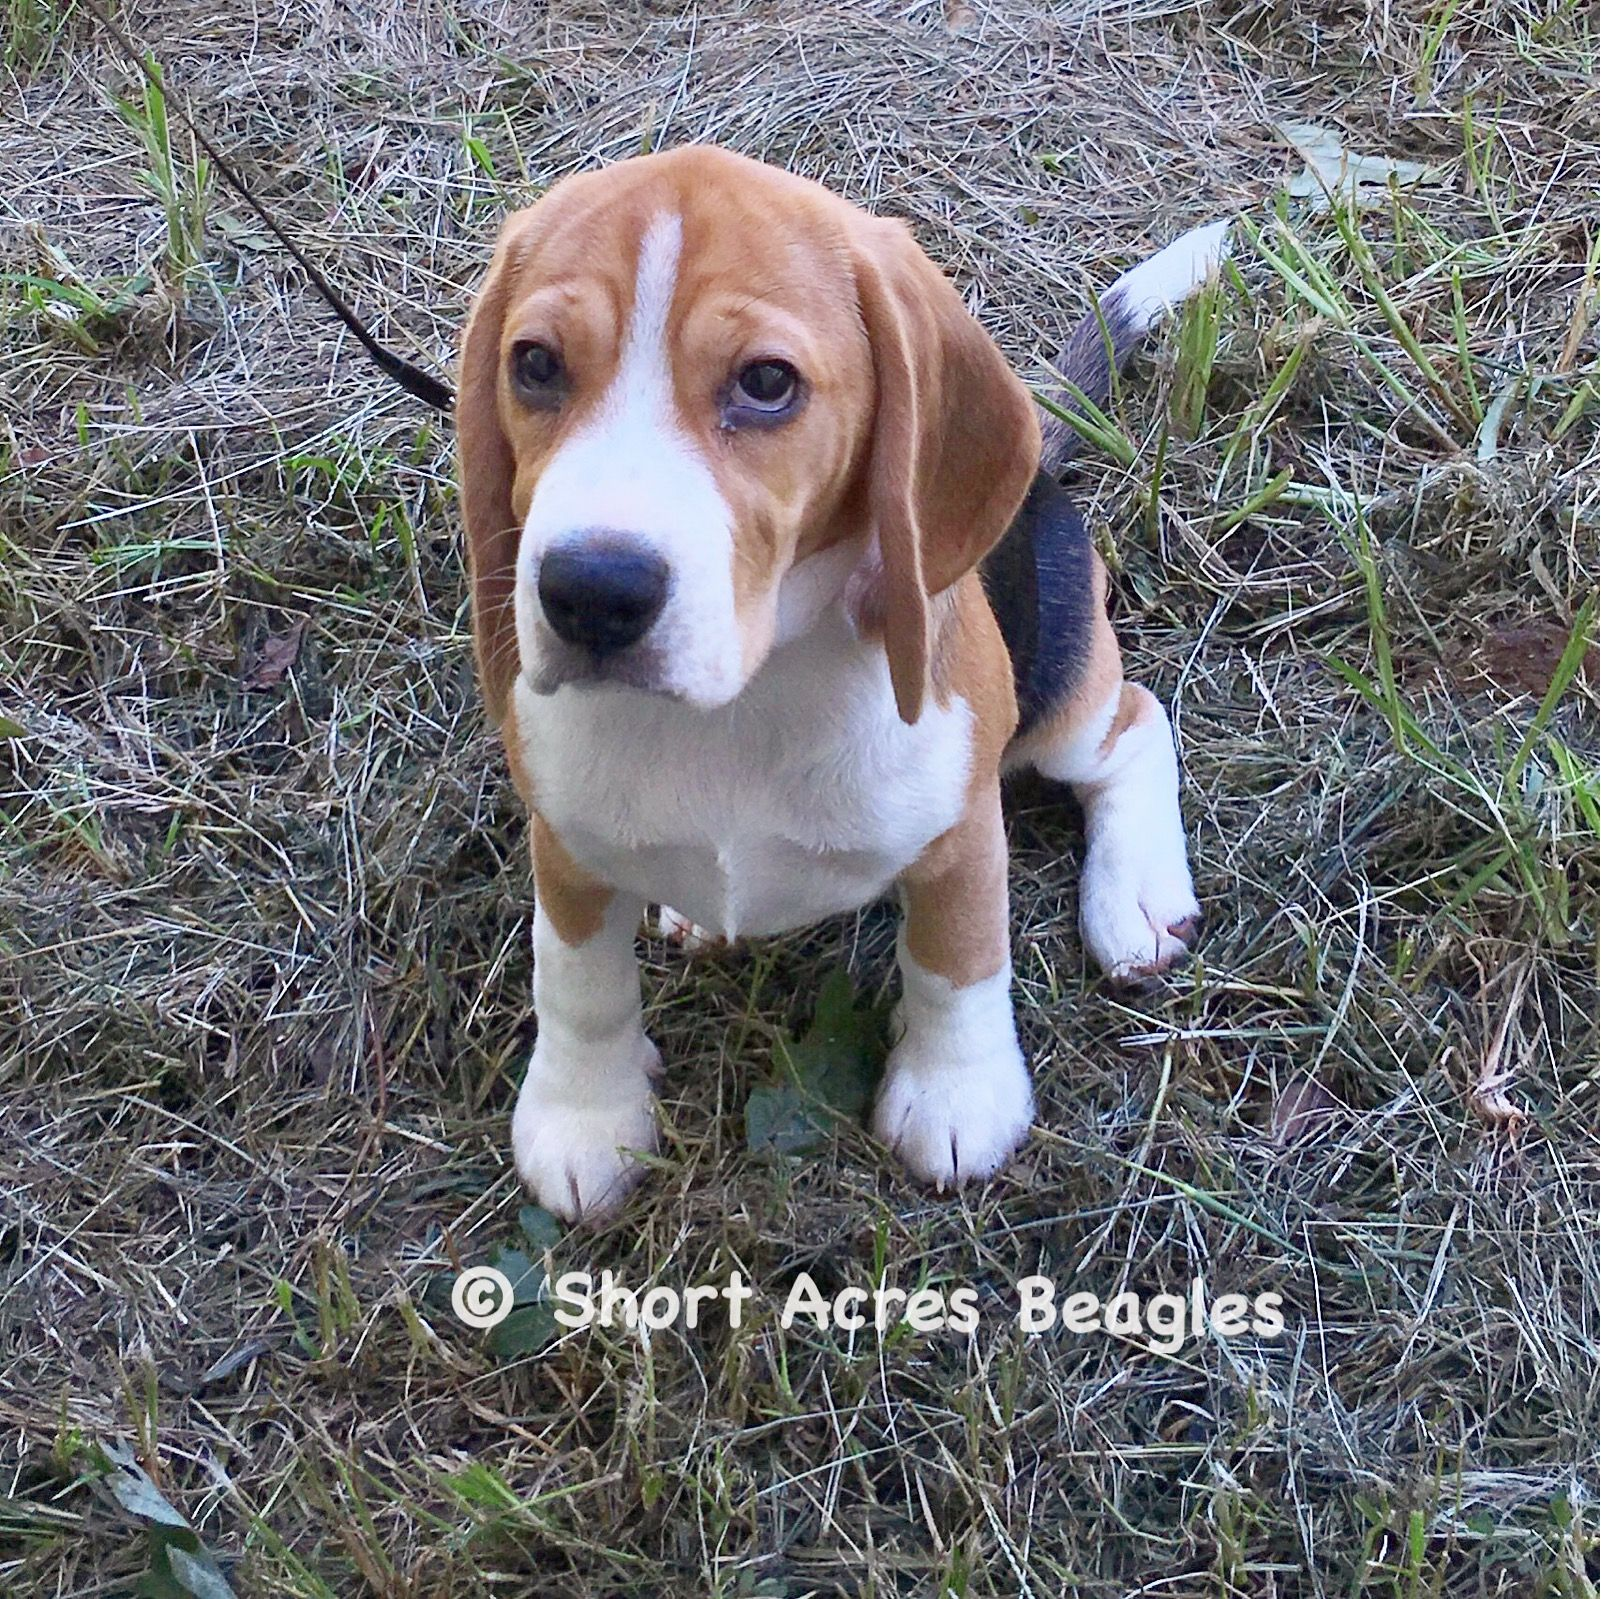 Pin By Short Acres Beagles On My Beagles Beagle Dogs Puppies